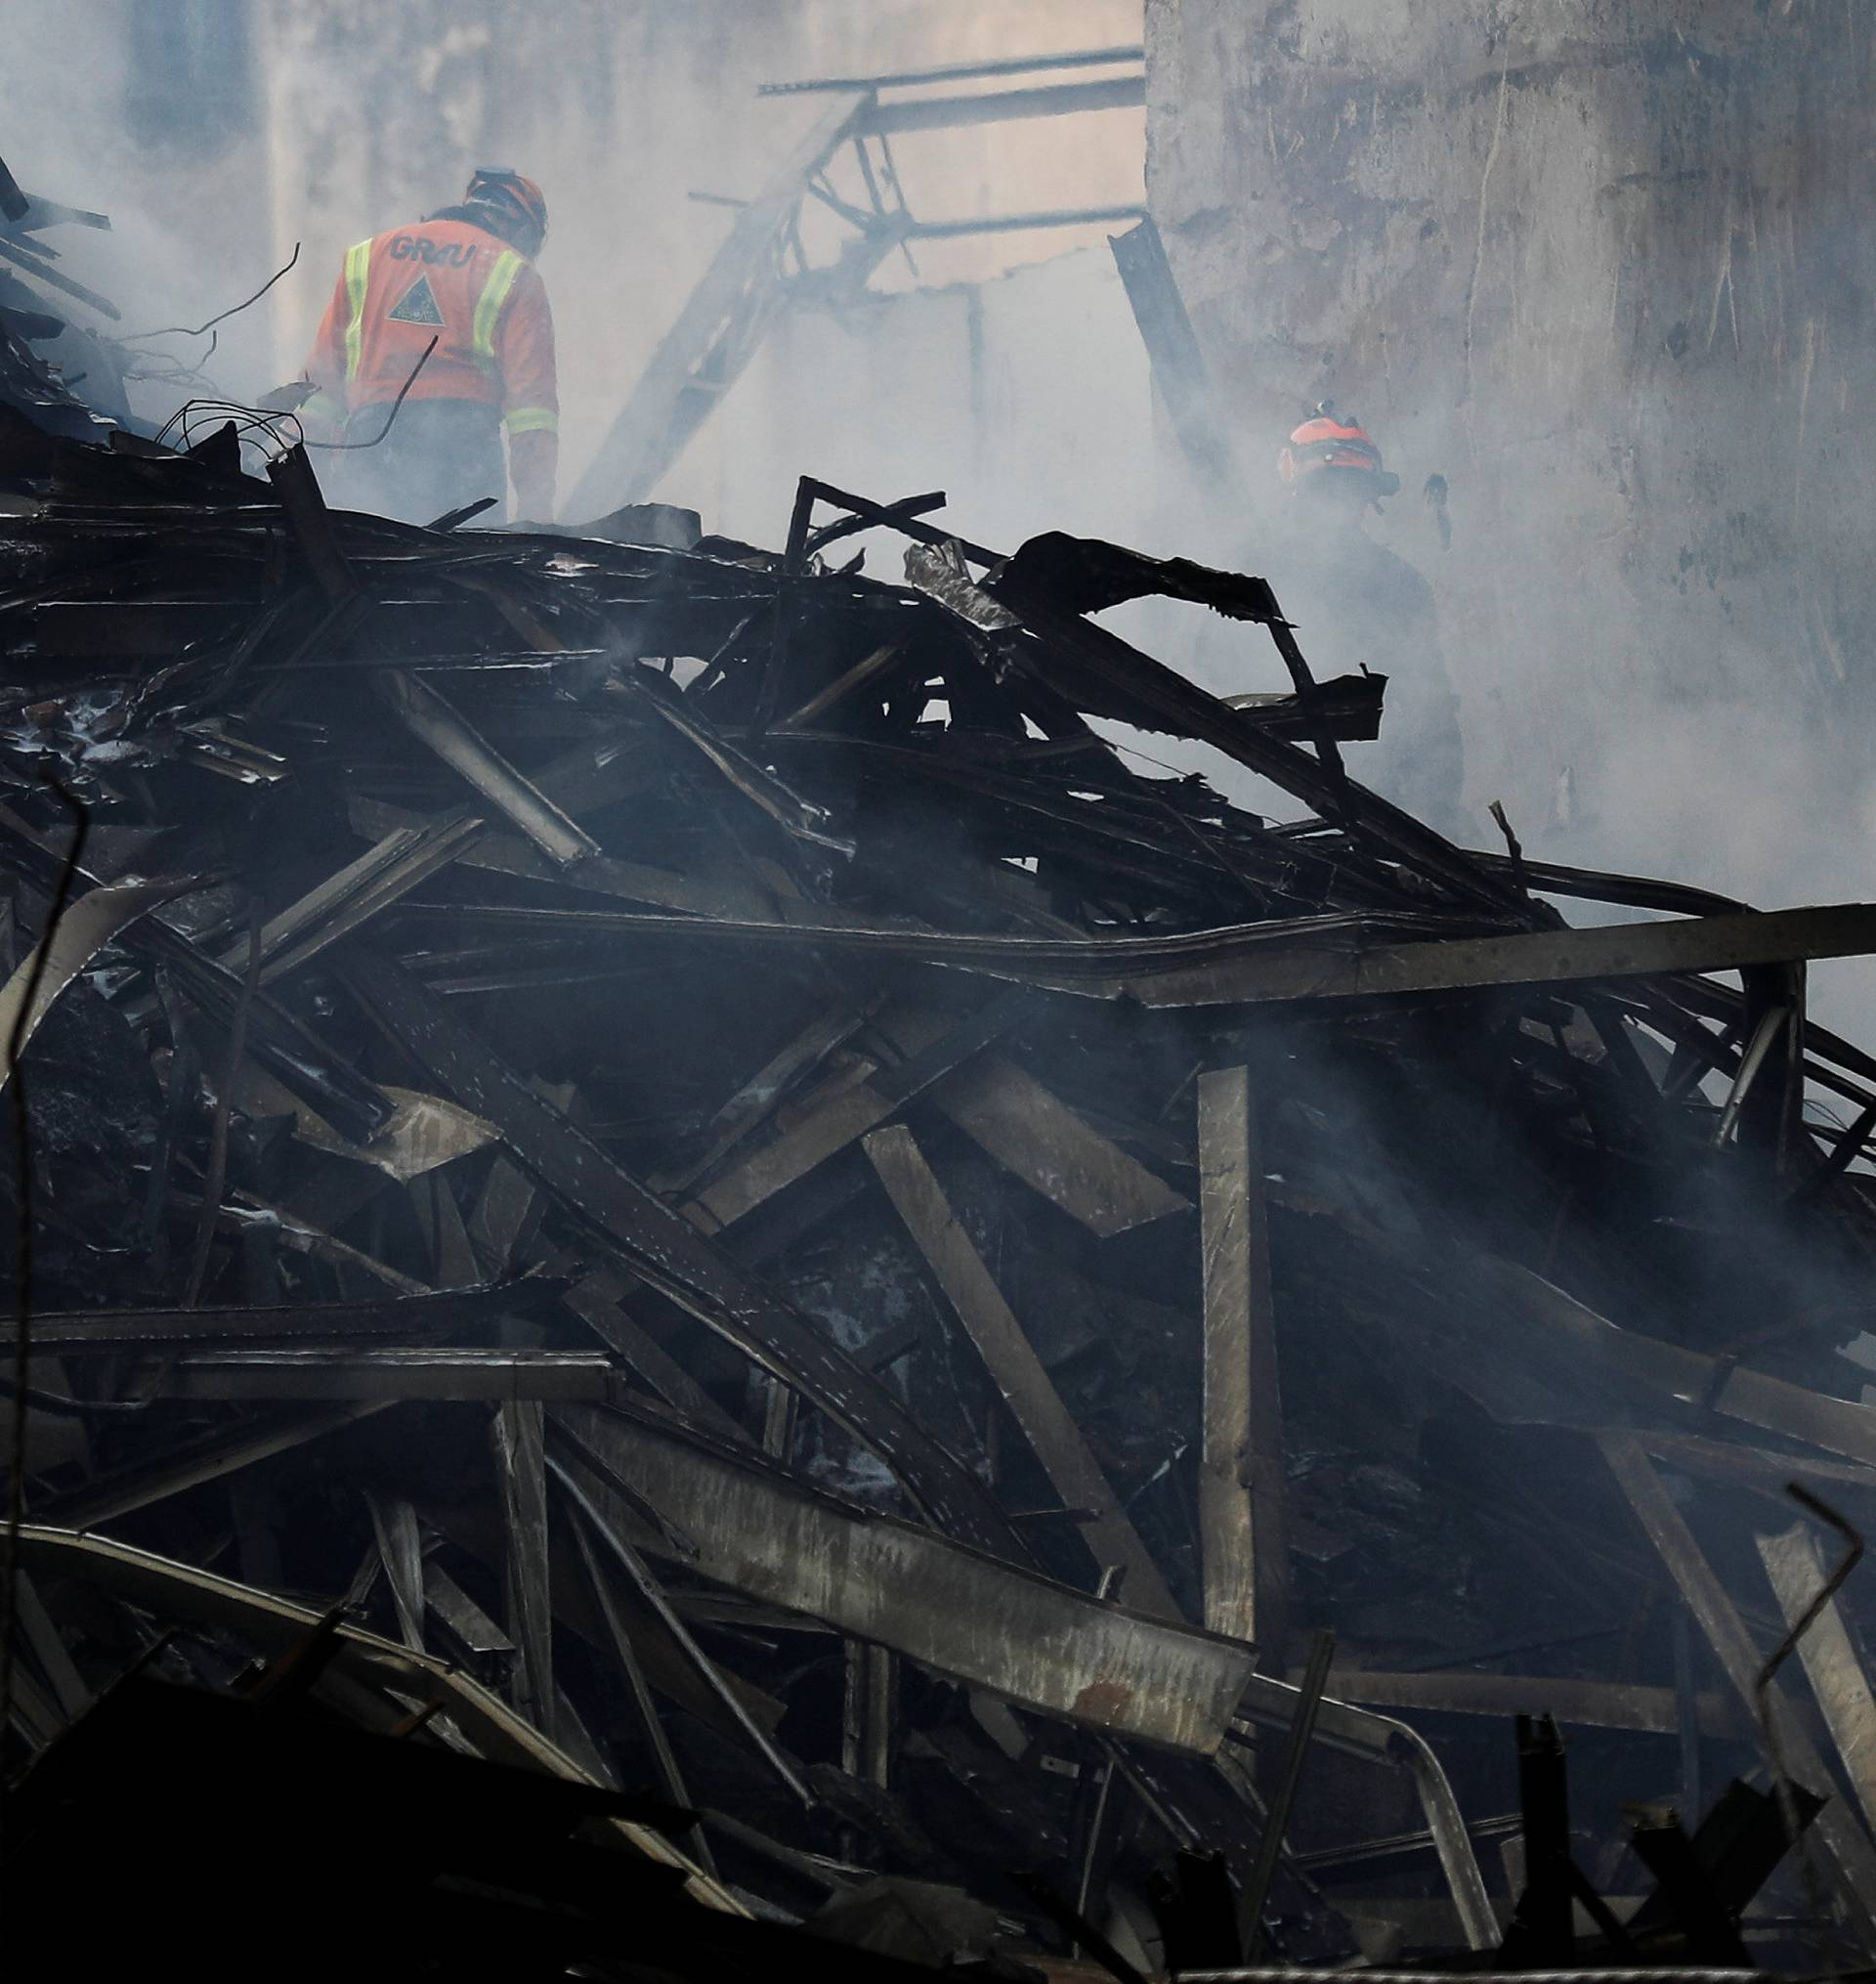 Firefighters try to extinguish a fire of a building that caught fire and collapsed in the center of Sao Paulo